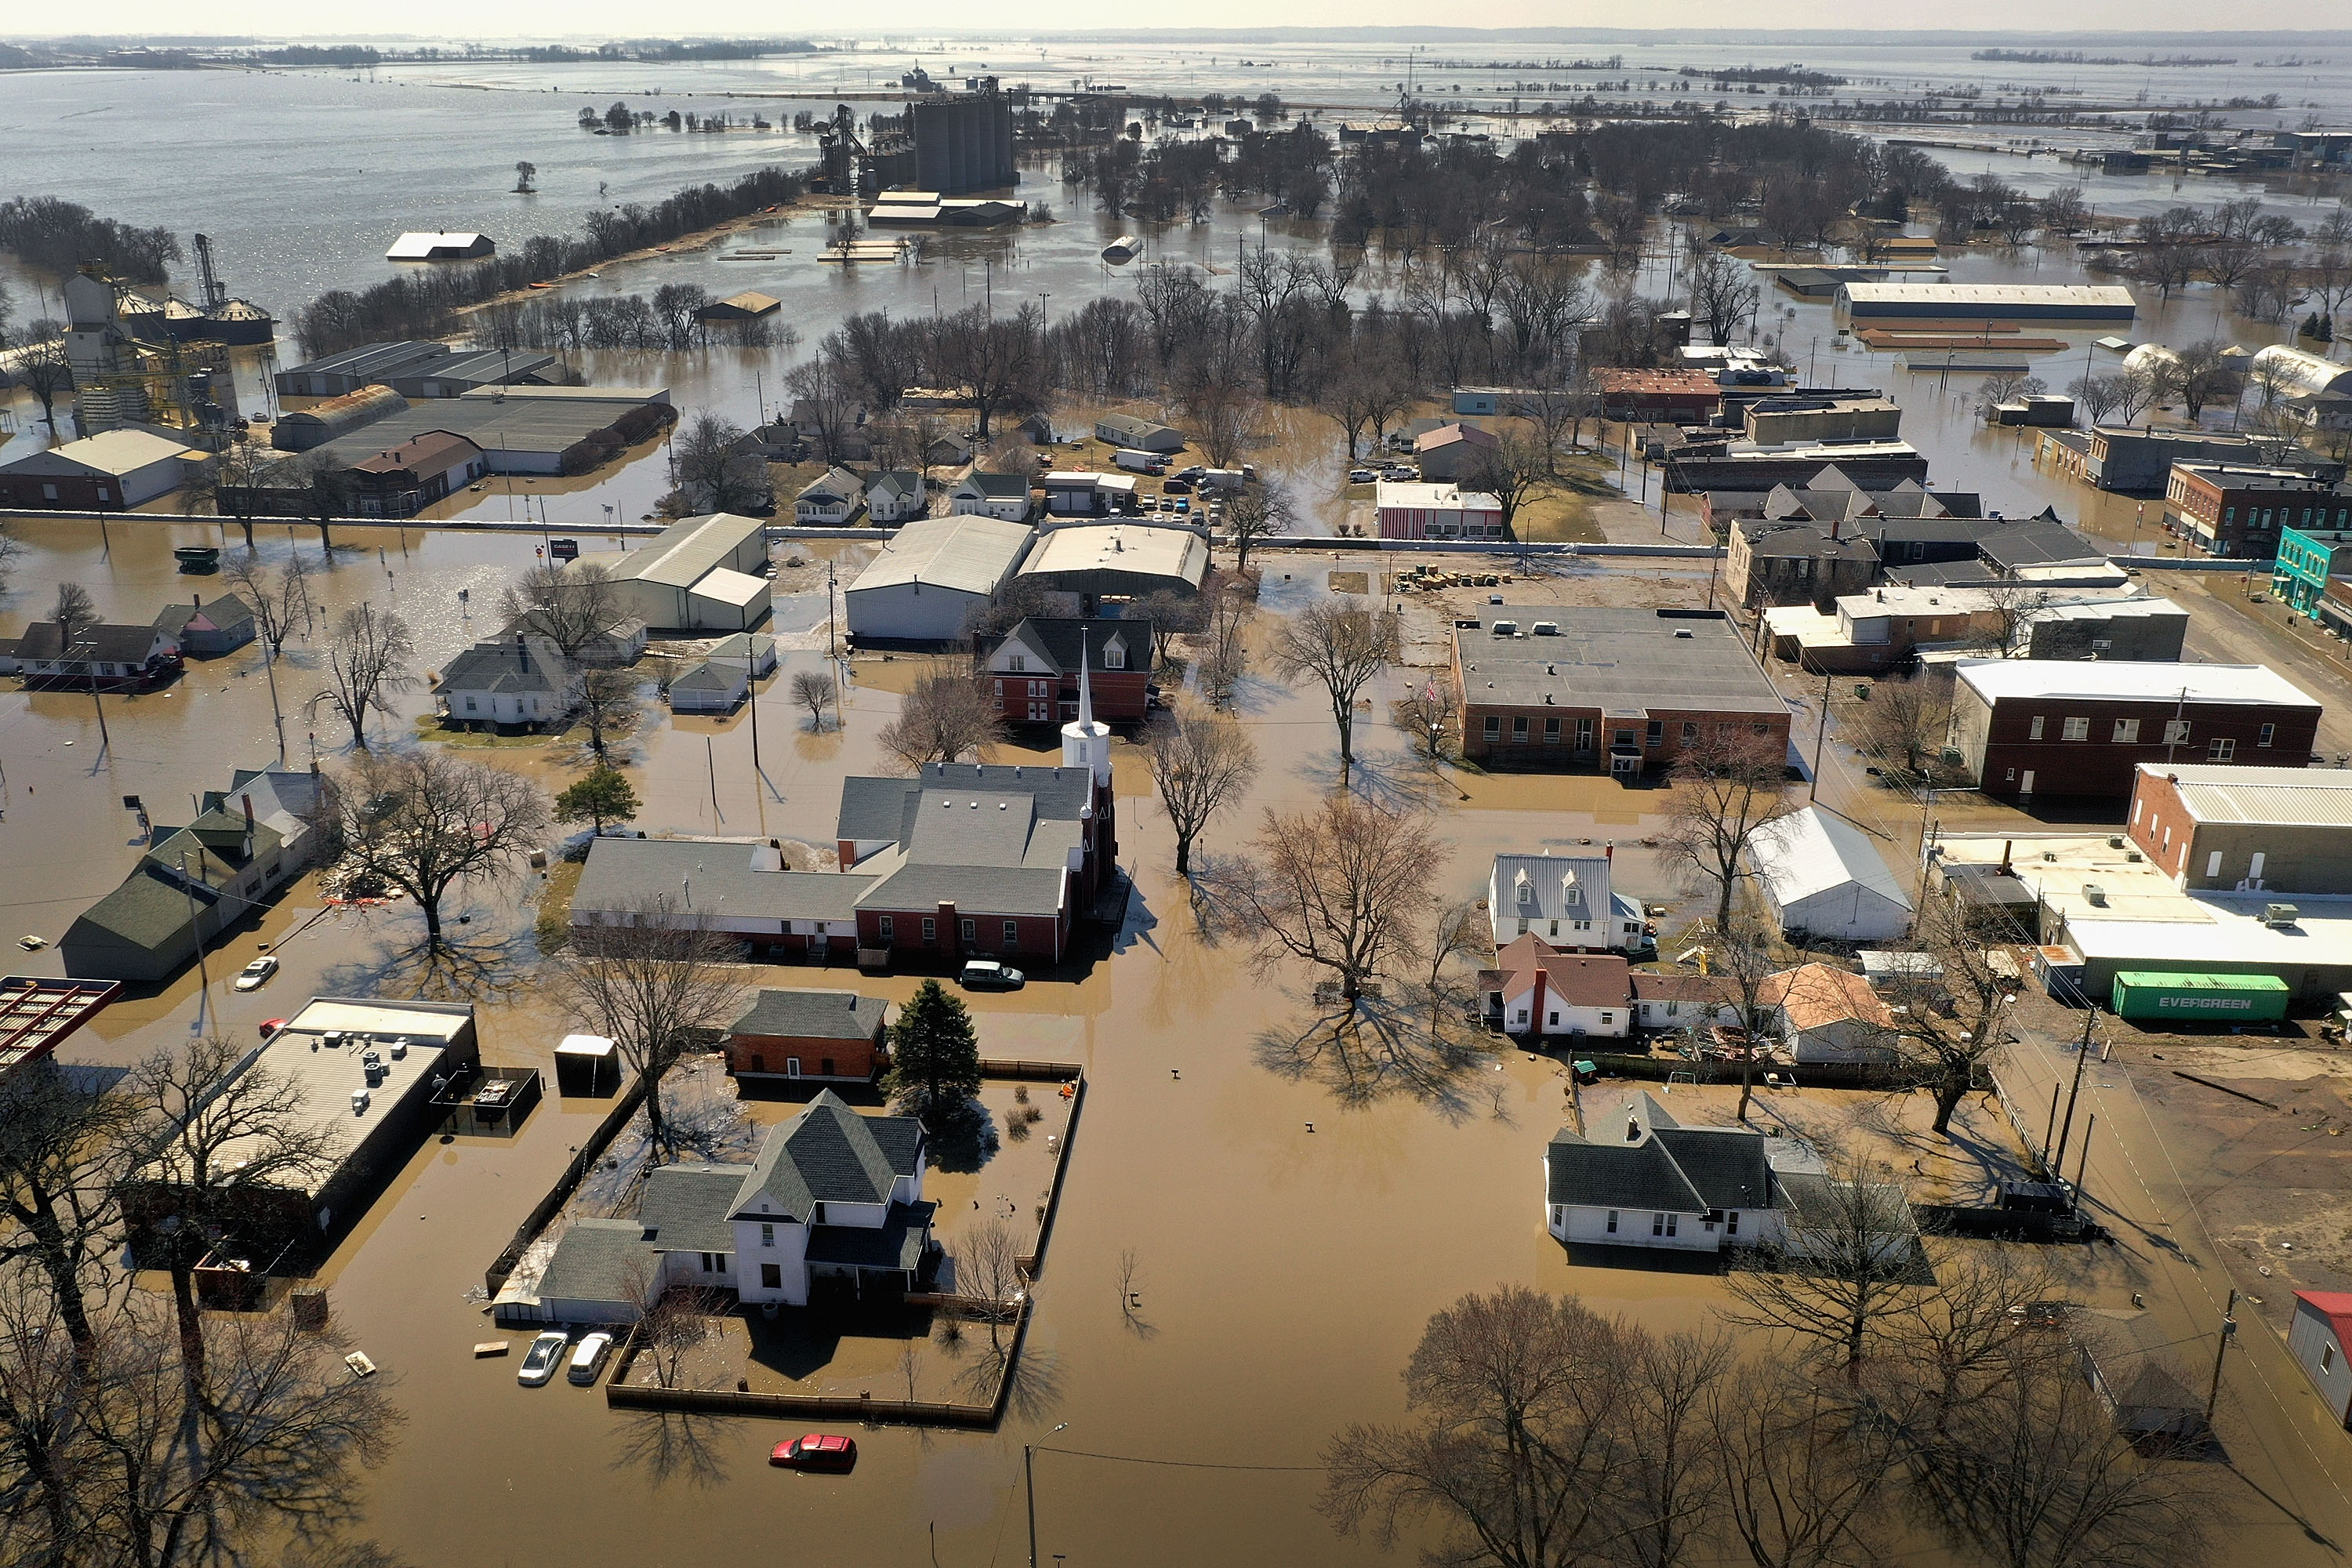 """HAMBURG, IOWA - MARCH 20:  Homes and businesses are surrounded by floodwater on March 20, 2019 in Hamburg, Iowa. Several Midwest states are battling some of the worst flooding they have experienced in decades as rain and snow melt from the recent """"bomb cyclone"""" has inundated rivers and streams. At least three deaths have been linked to the flooding.  (Photo by Scott Olson/Getty Images)"""